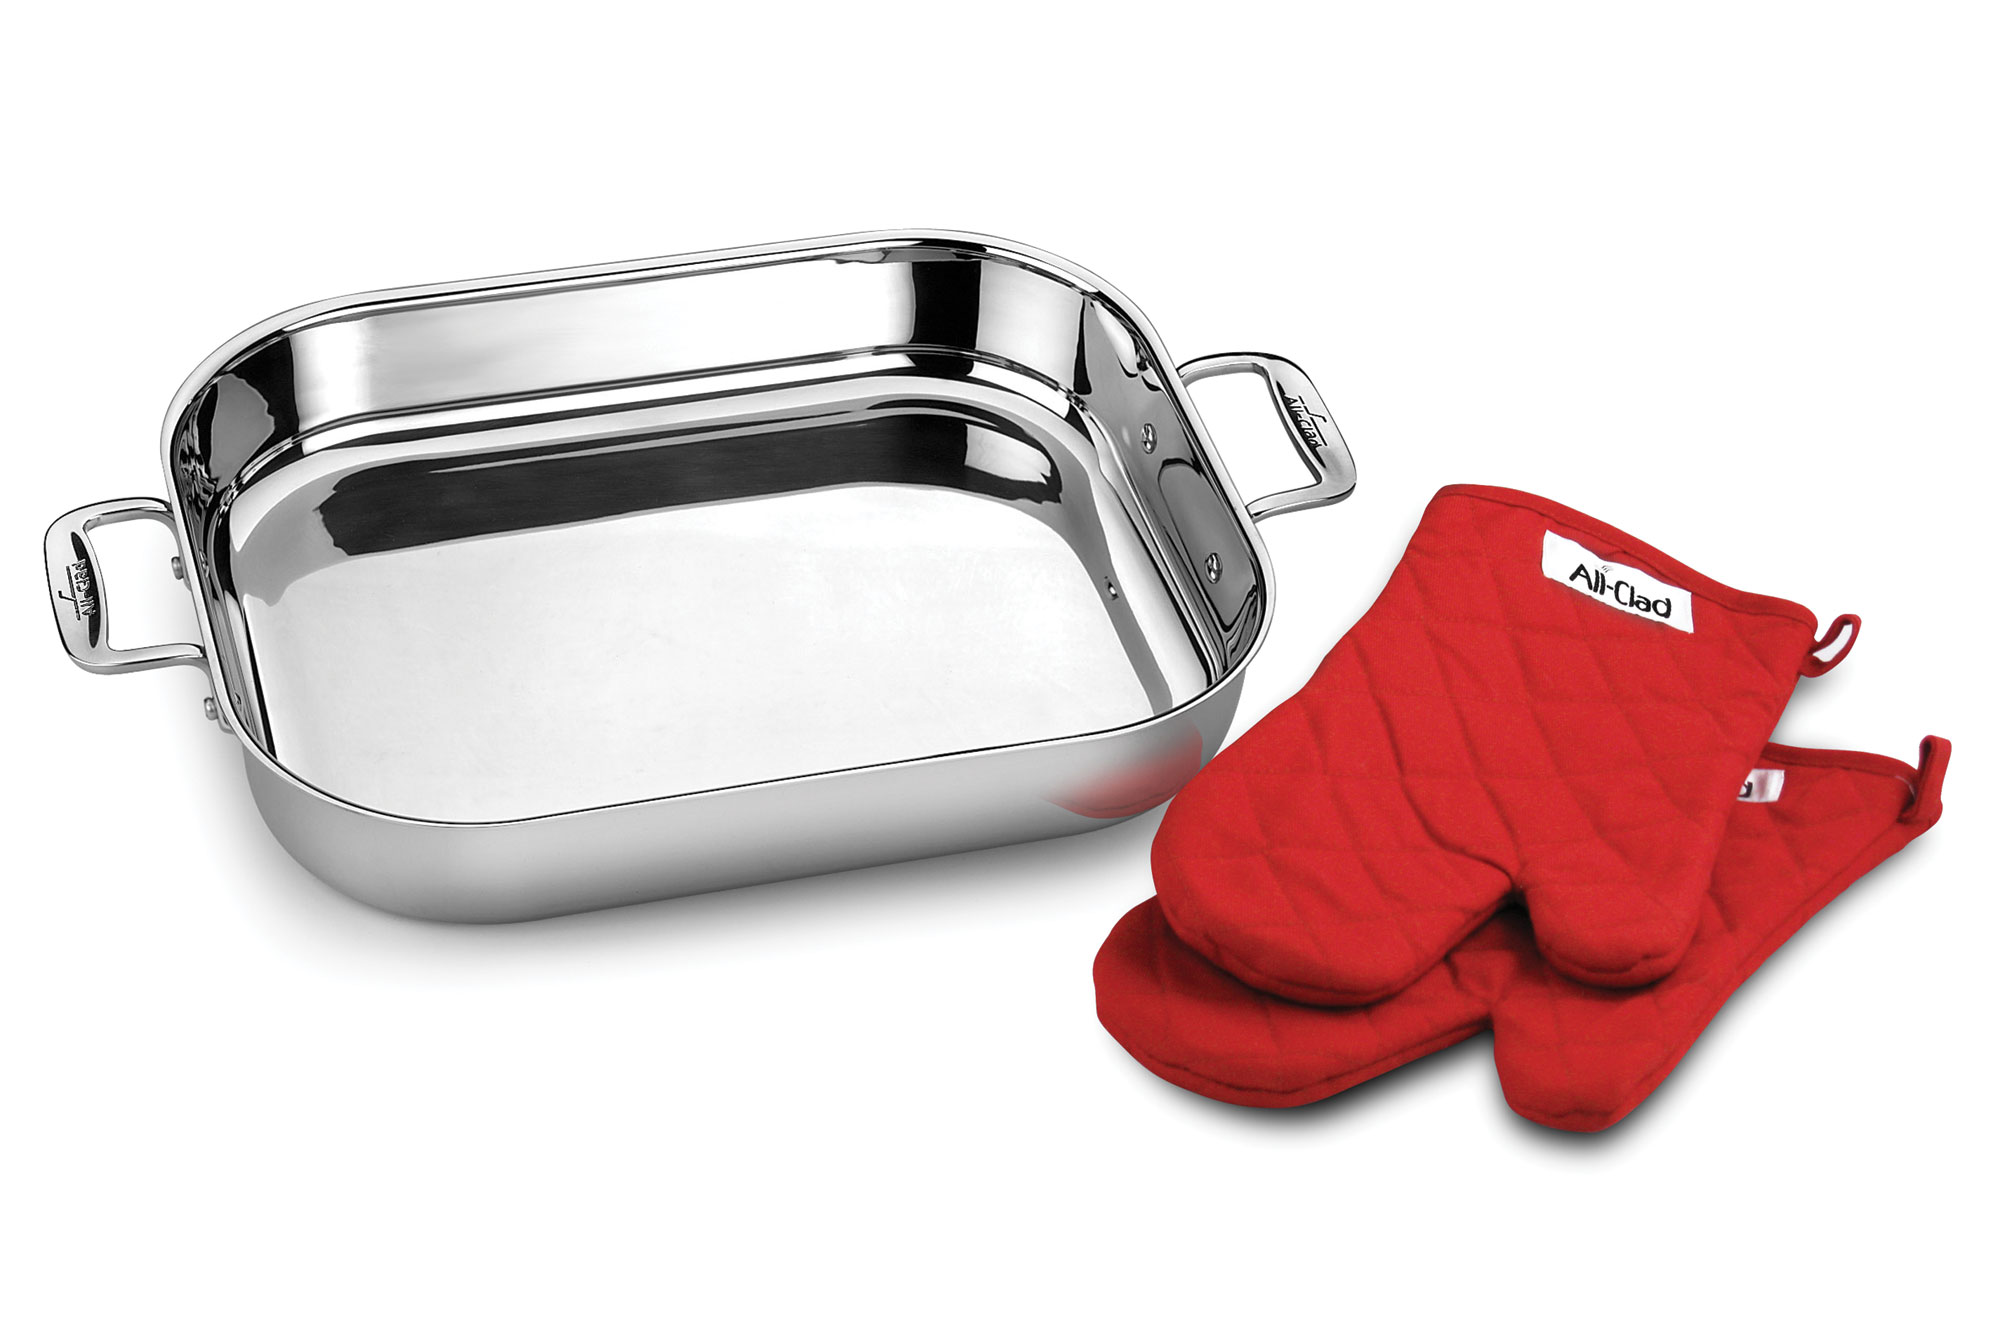 All Clad Stainless Steel Lasagna Pan With Oven Mitts